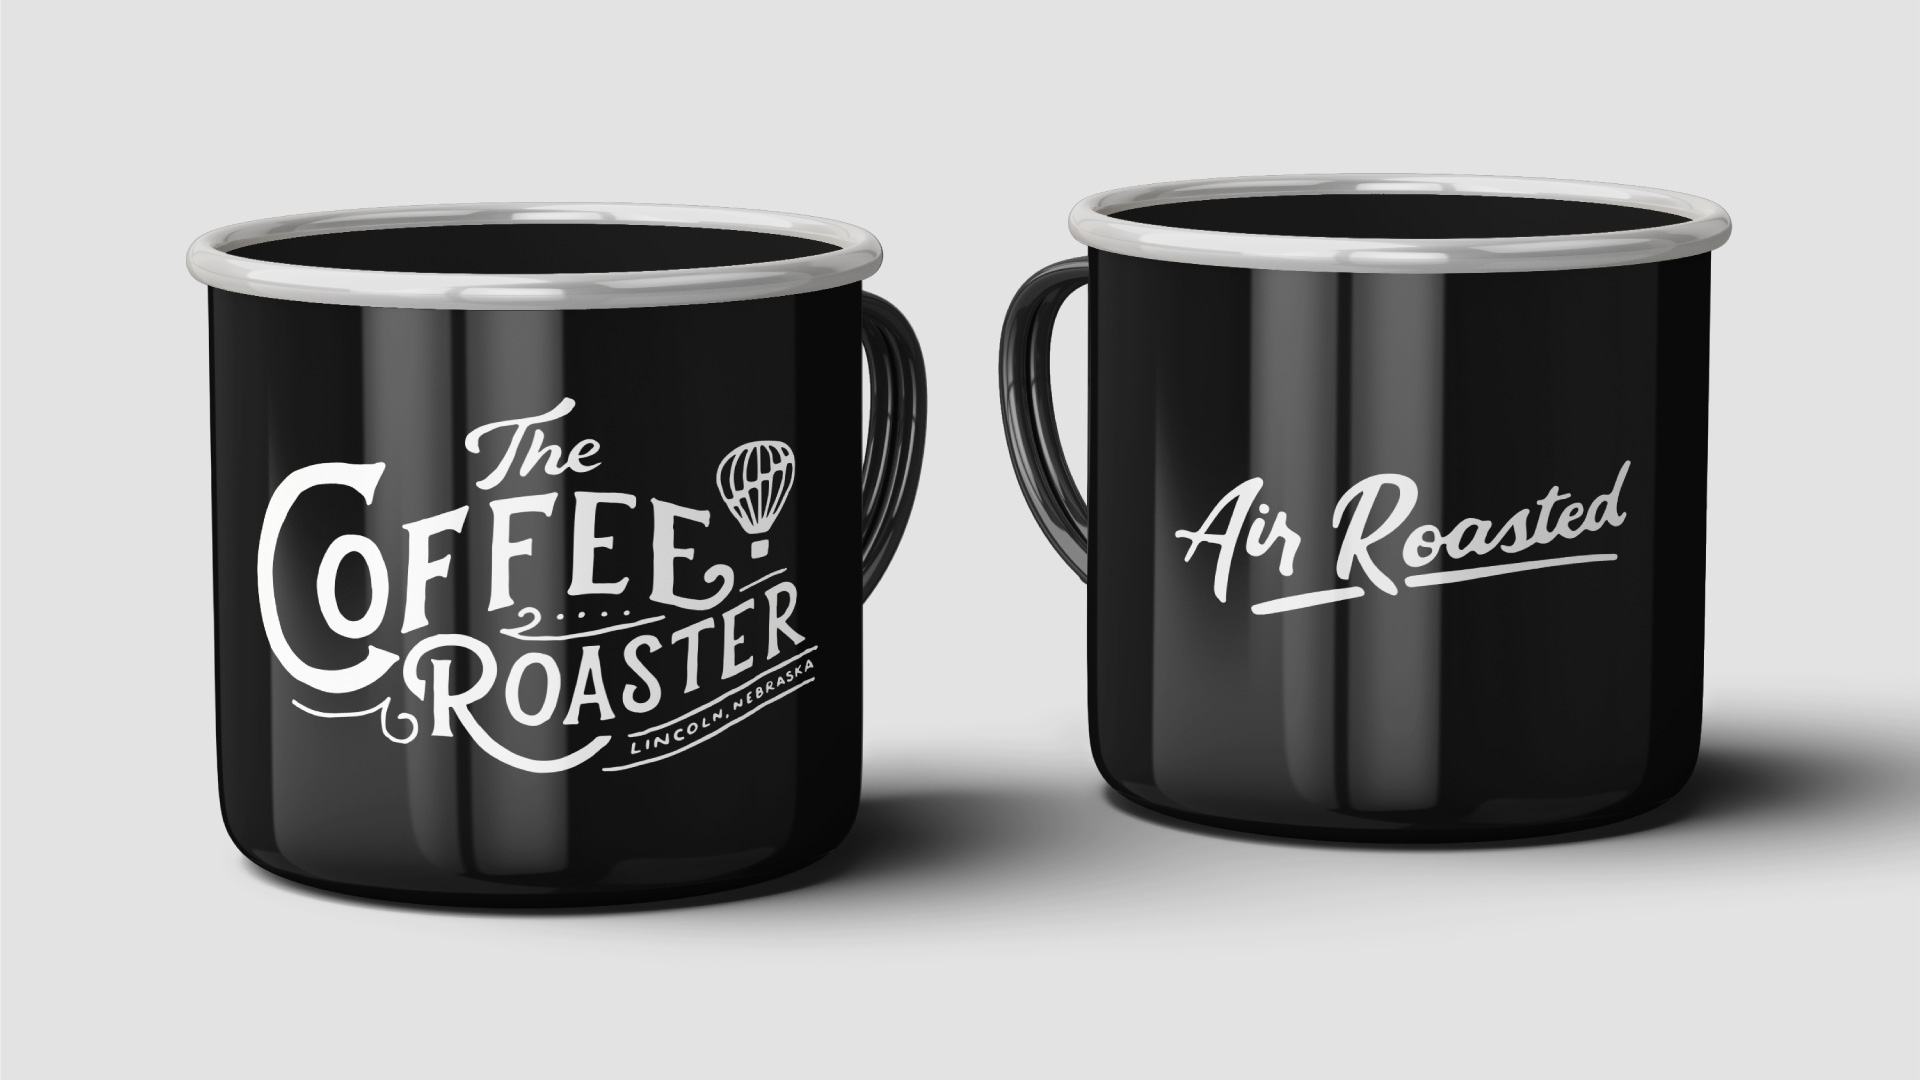 The Coffee Roaster mug designs Agency 877